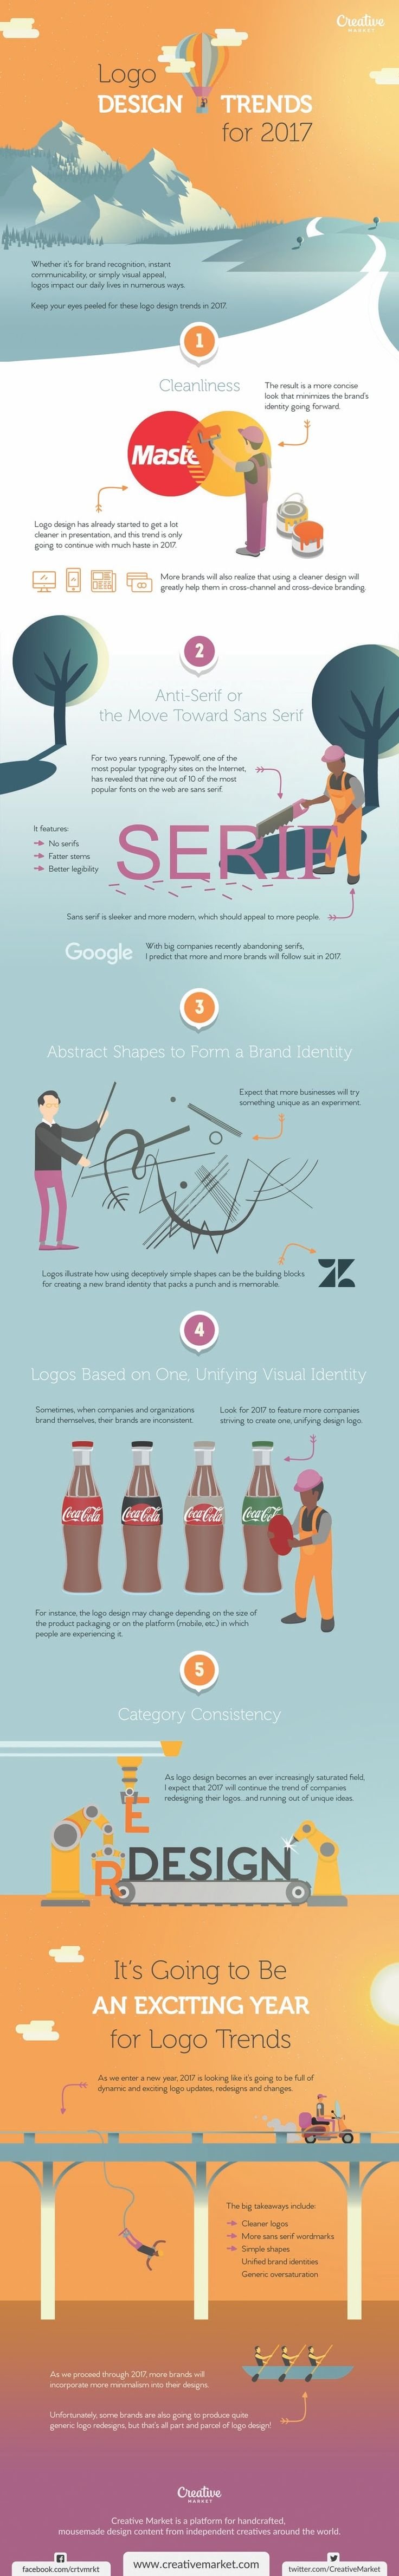 Poster design trends 2015 - Logo Design Trends For 2017 Infographic Social Media Today